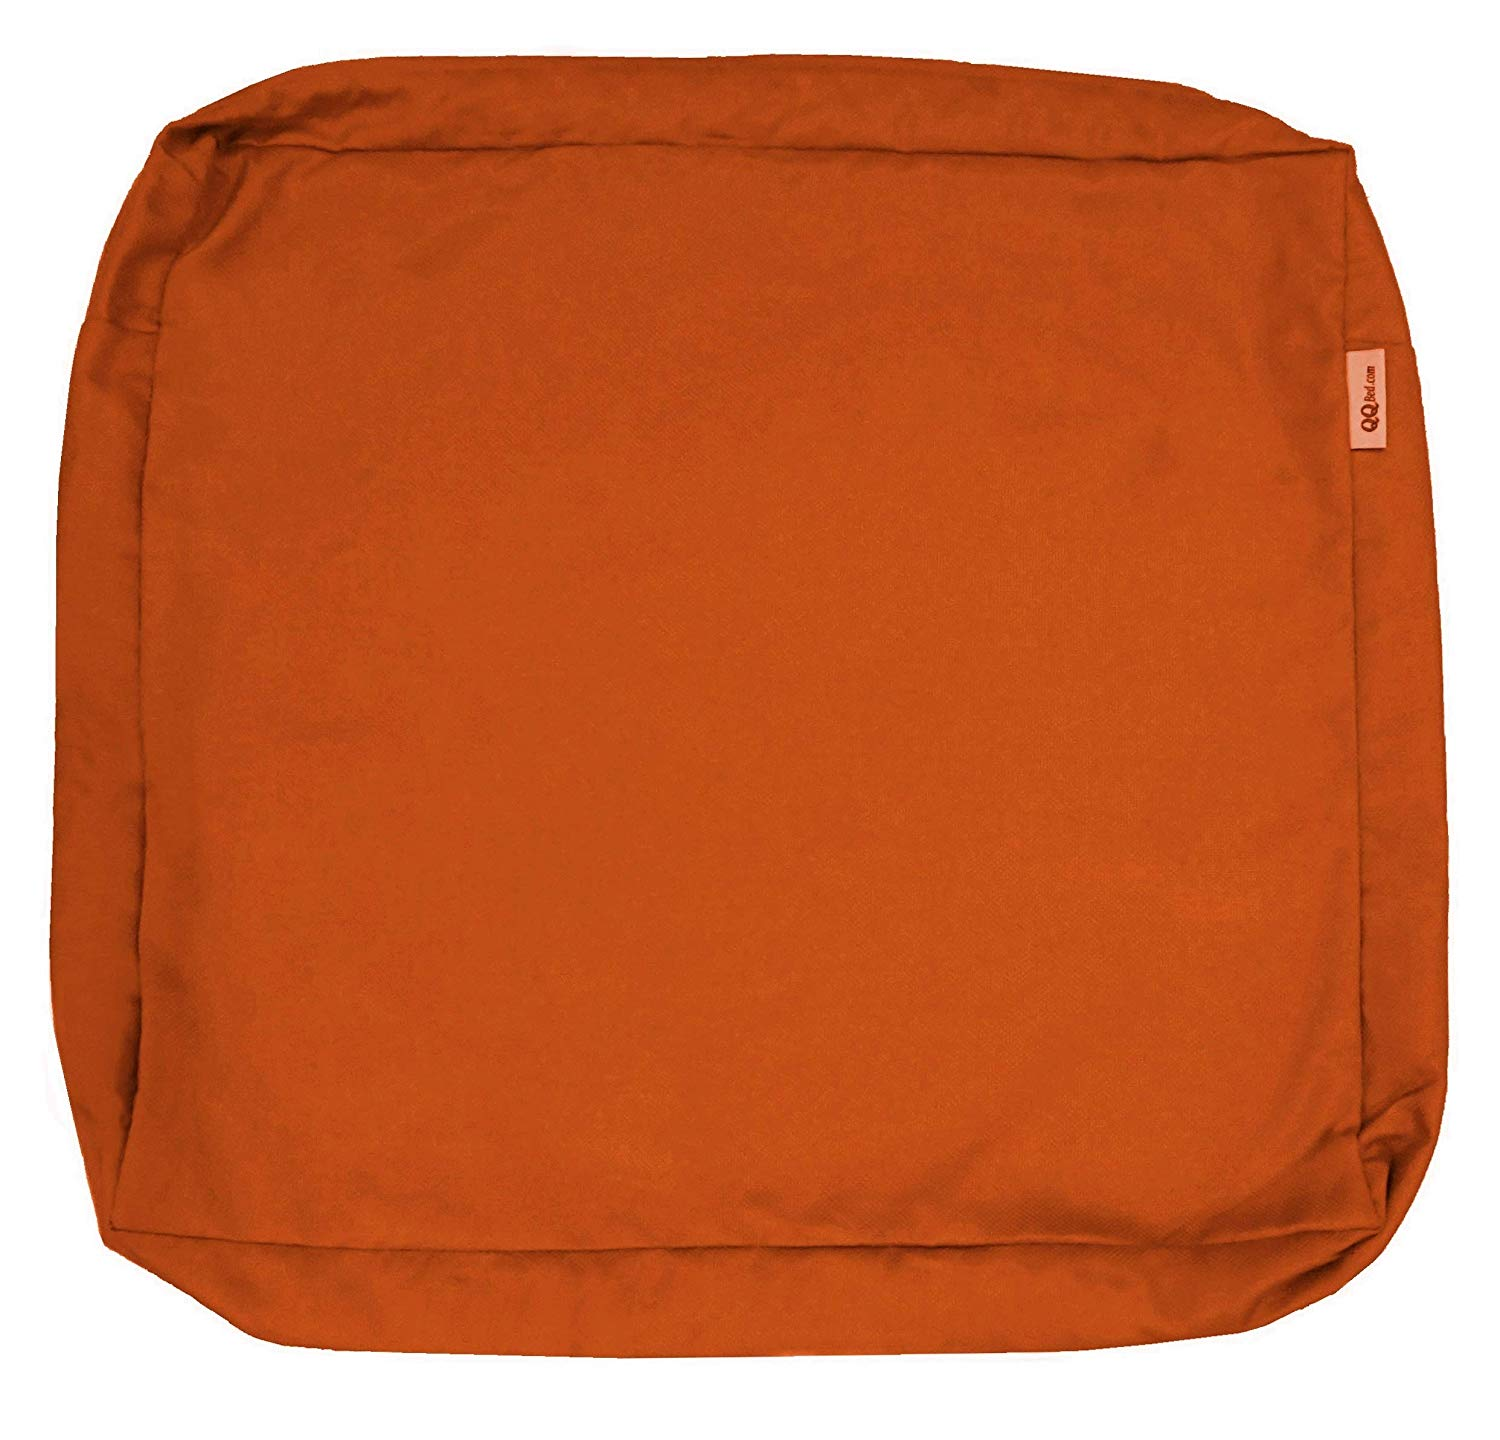 """QQbed Outdoor Patio Chair Washable Cushion Pillow Seat Covers Extra Large 24""""X22""""X4"""" - Replacement Covers Only (24""""X22""""X4"""" 4 PACK, Rust)"""